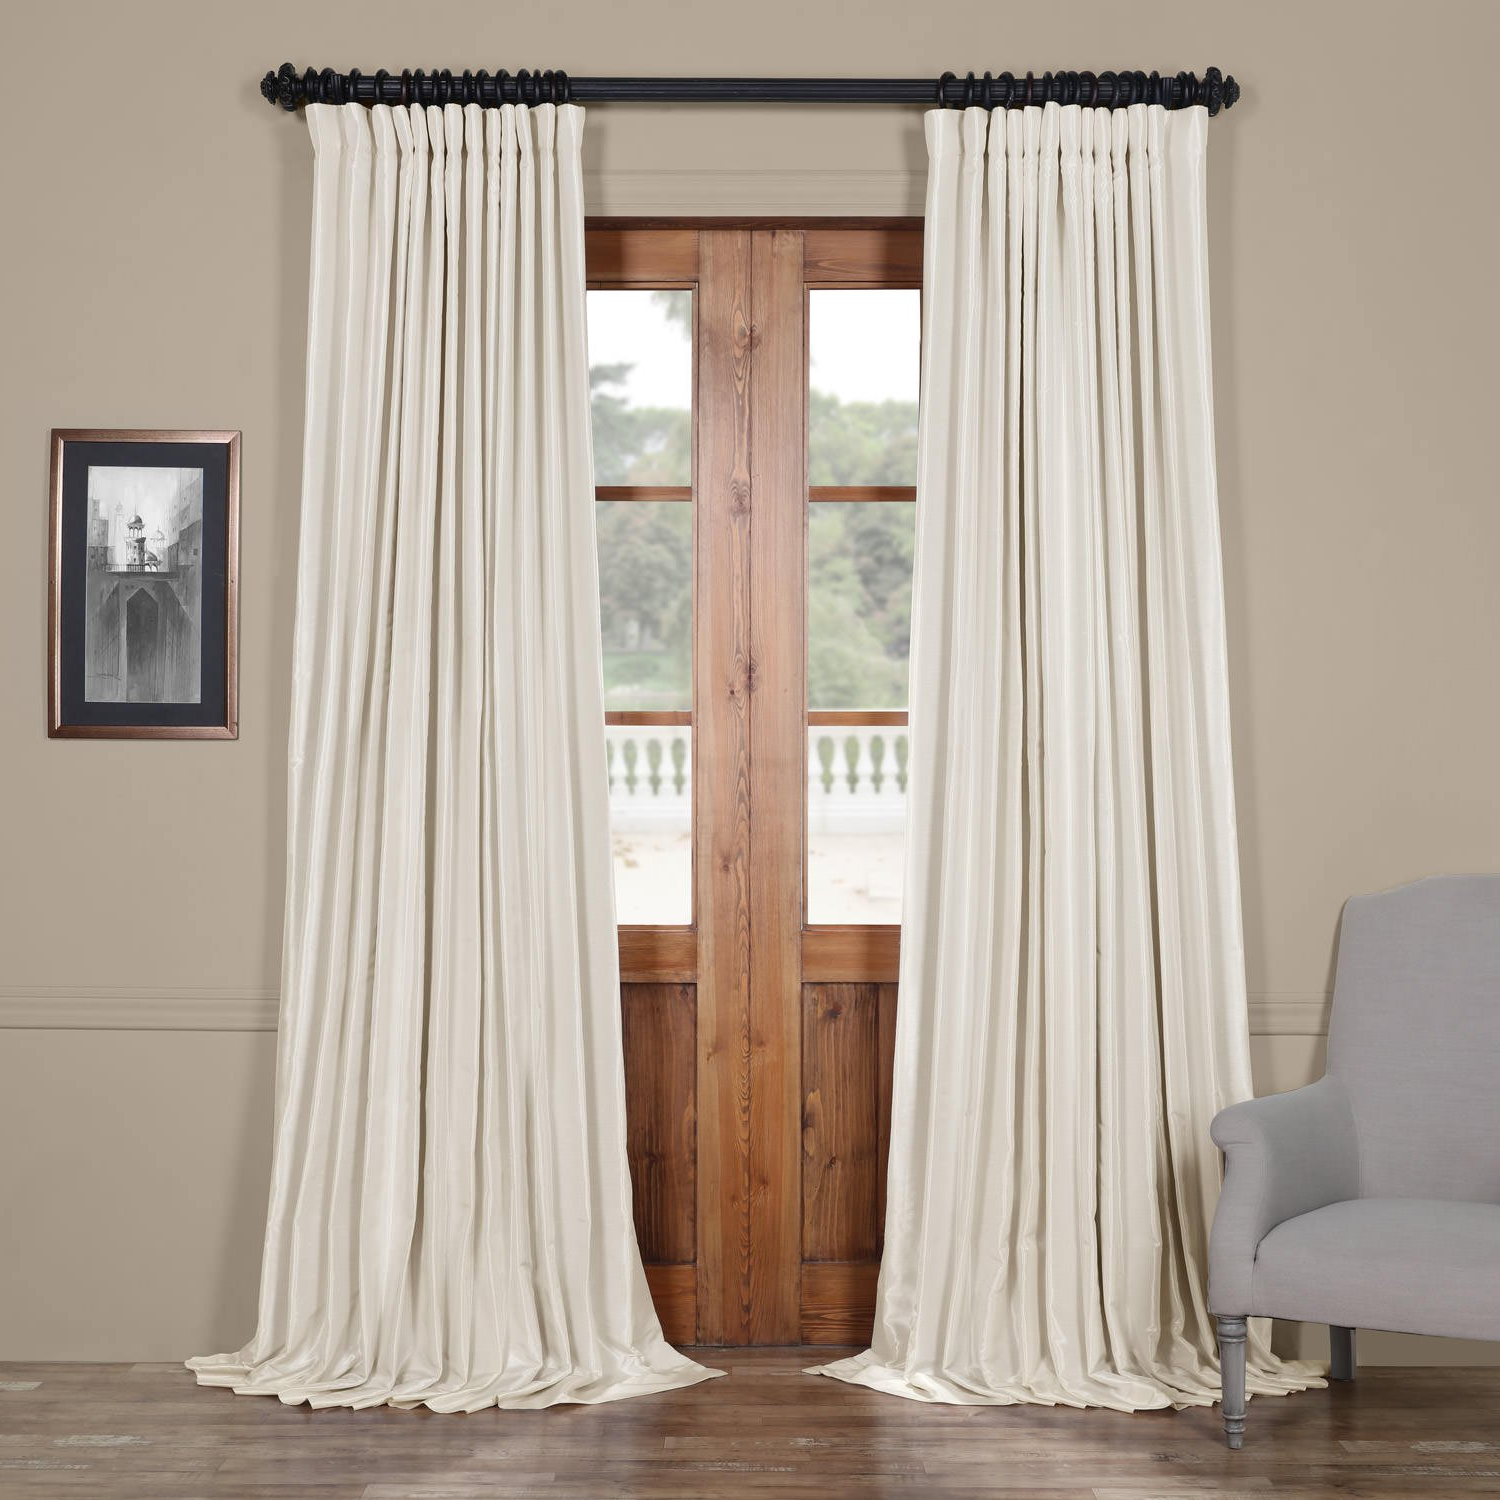 Popular Pdch Kbs2Bo 96 Dw Blackout Extra Wide Vintage Faux Dupioni Curtain, Off  White, 100 X 96 Inside Ice White Vintage Faux Textured Silk Curtain Panels (View 16 of 20)